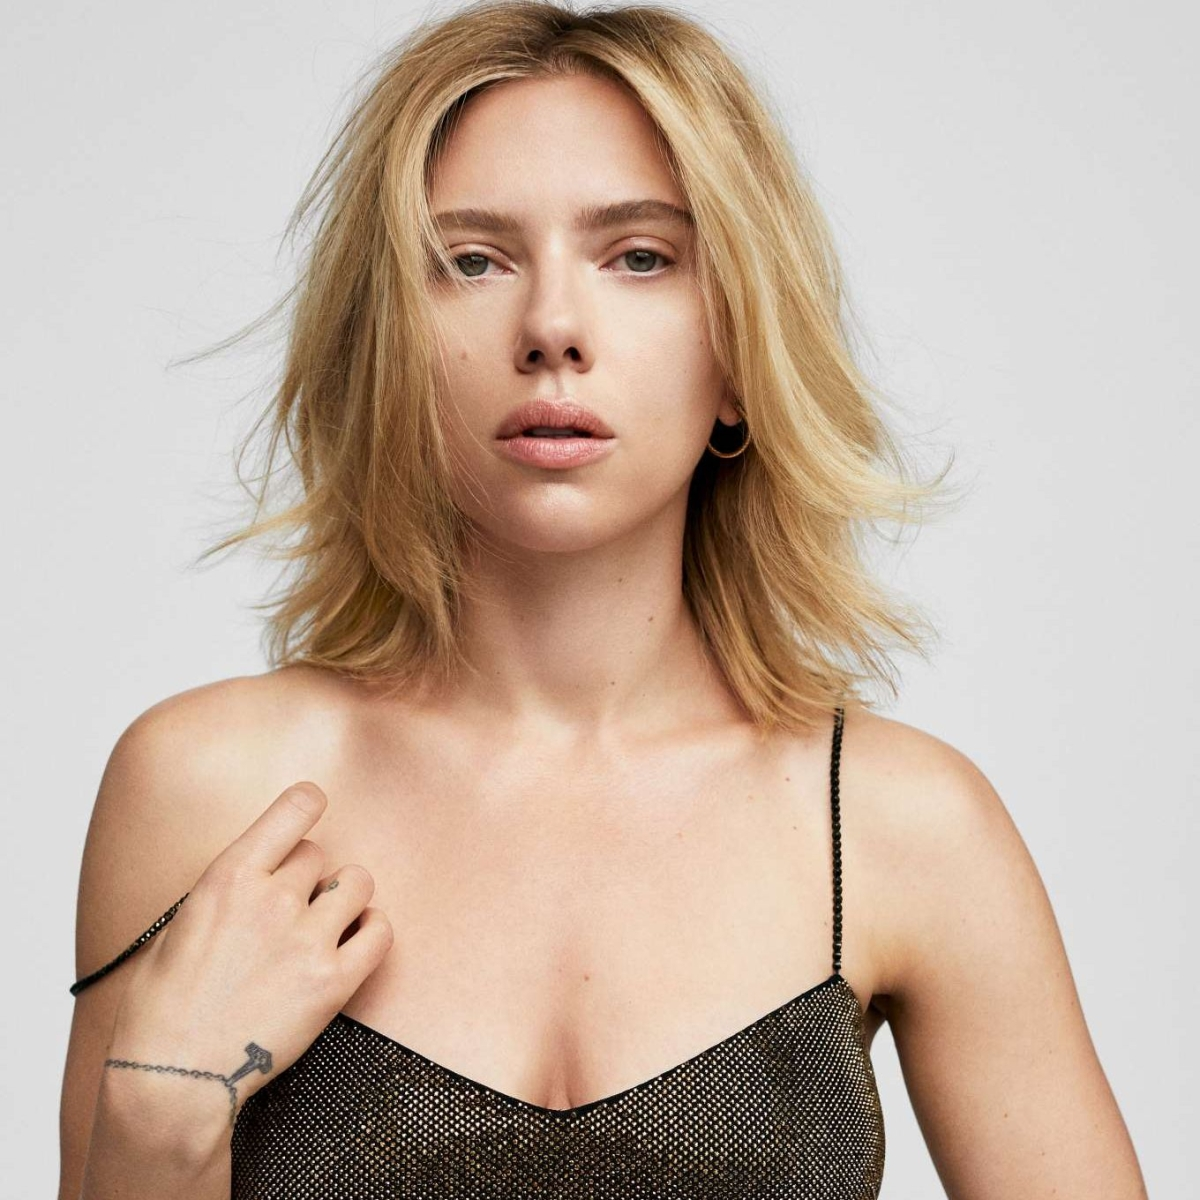 Scarlett Johansson: Pressure to be thin is getting worse